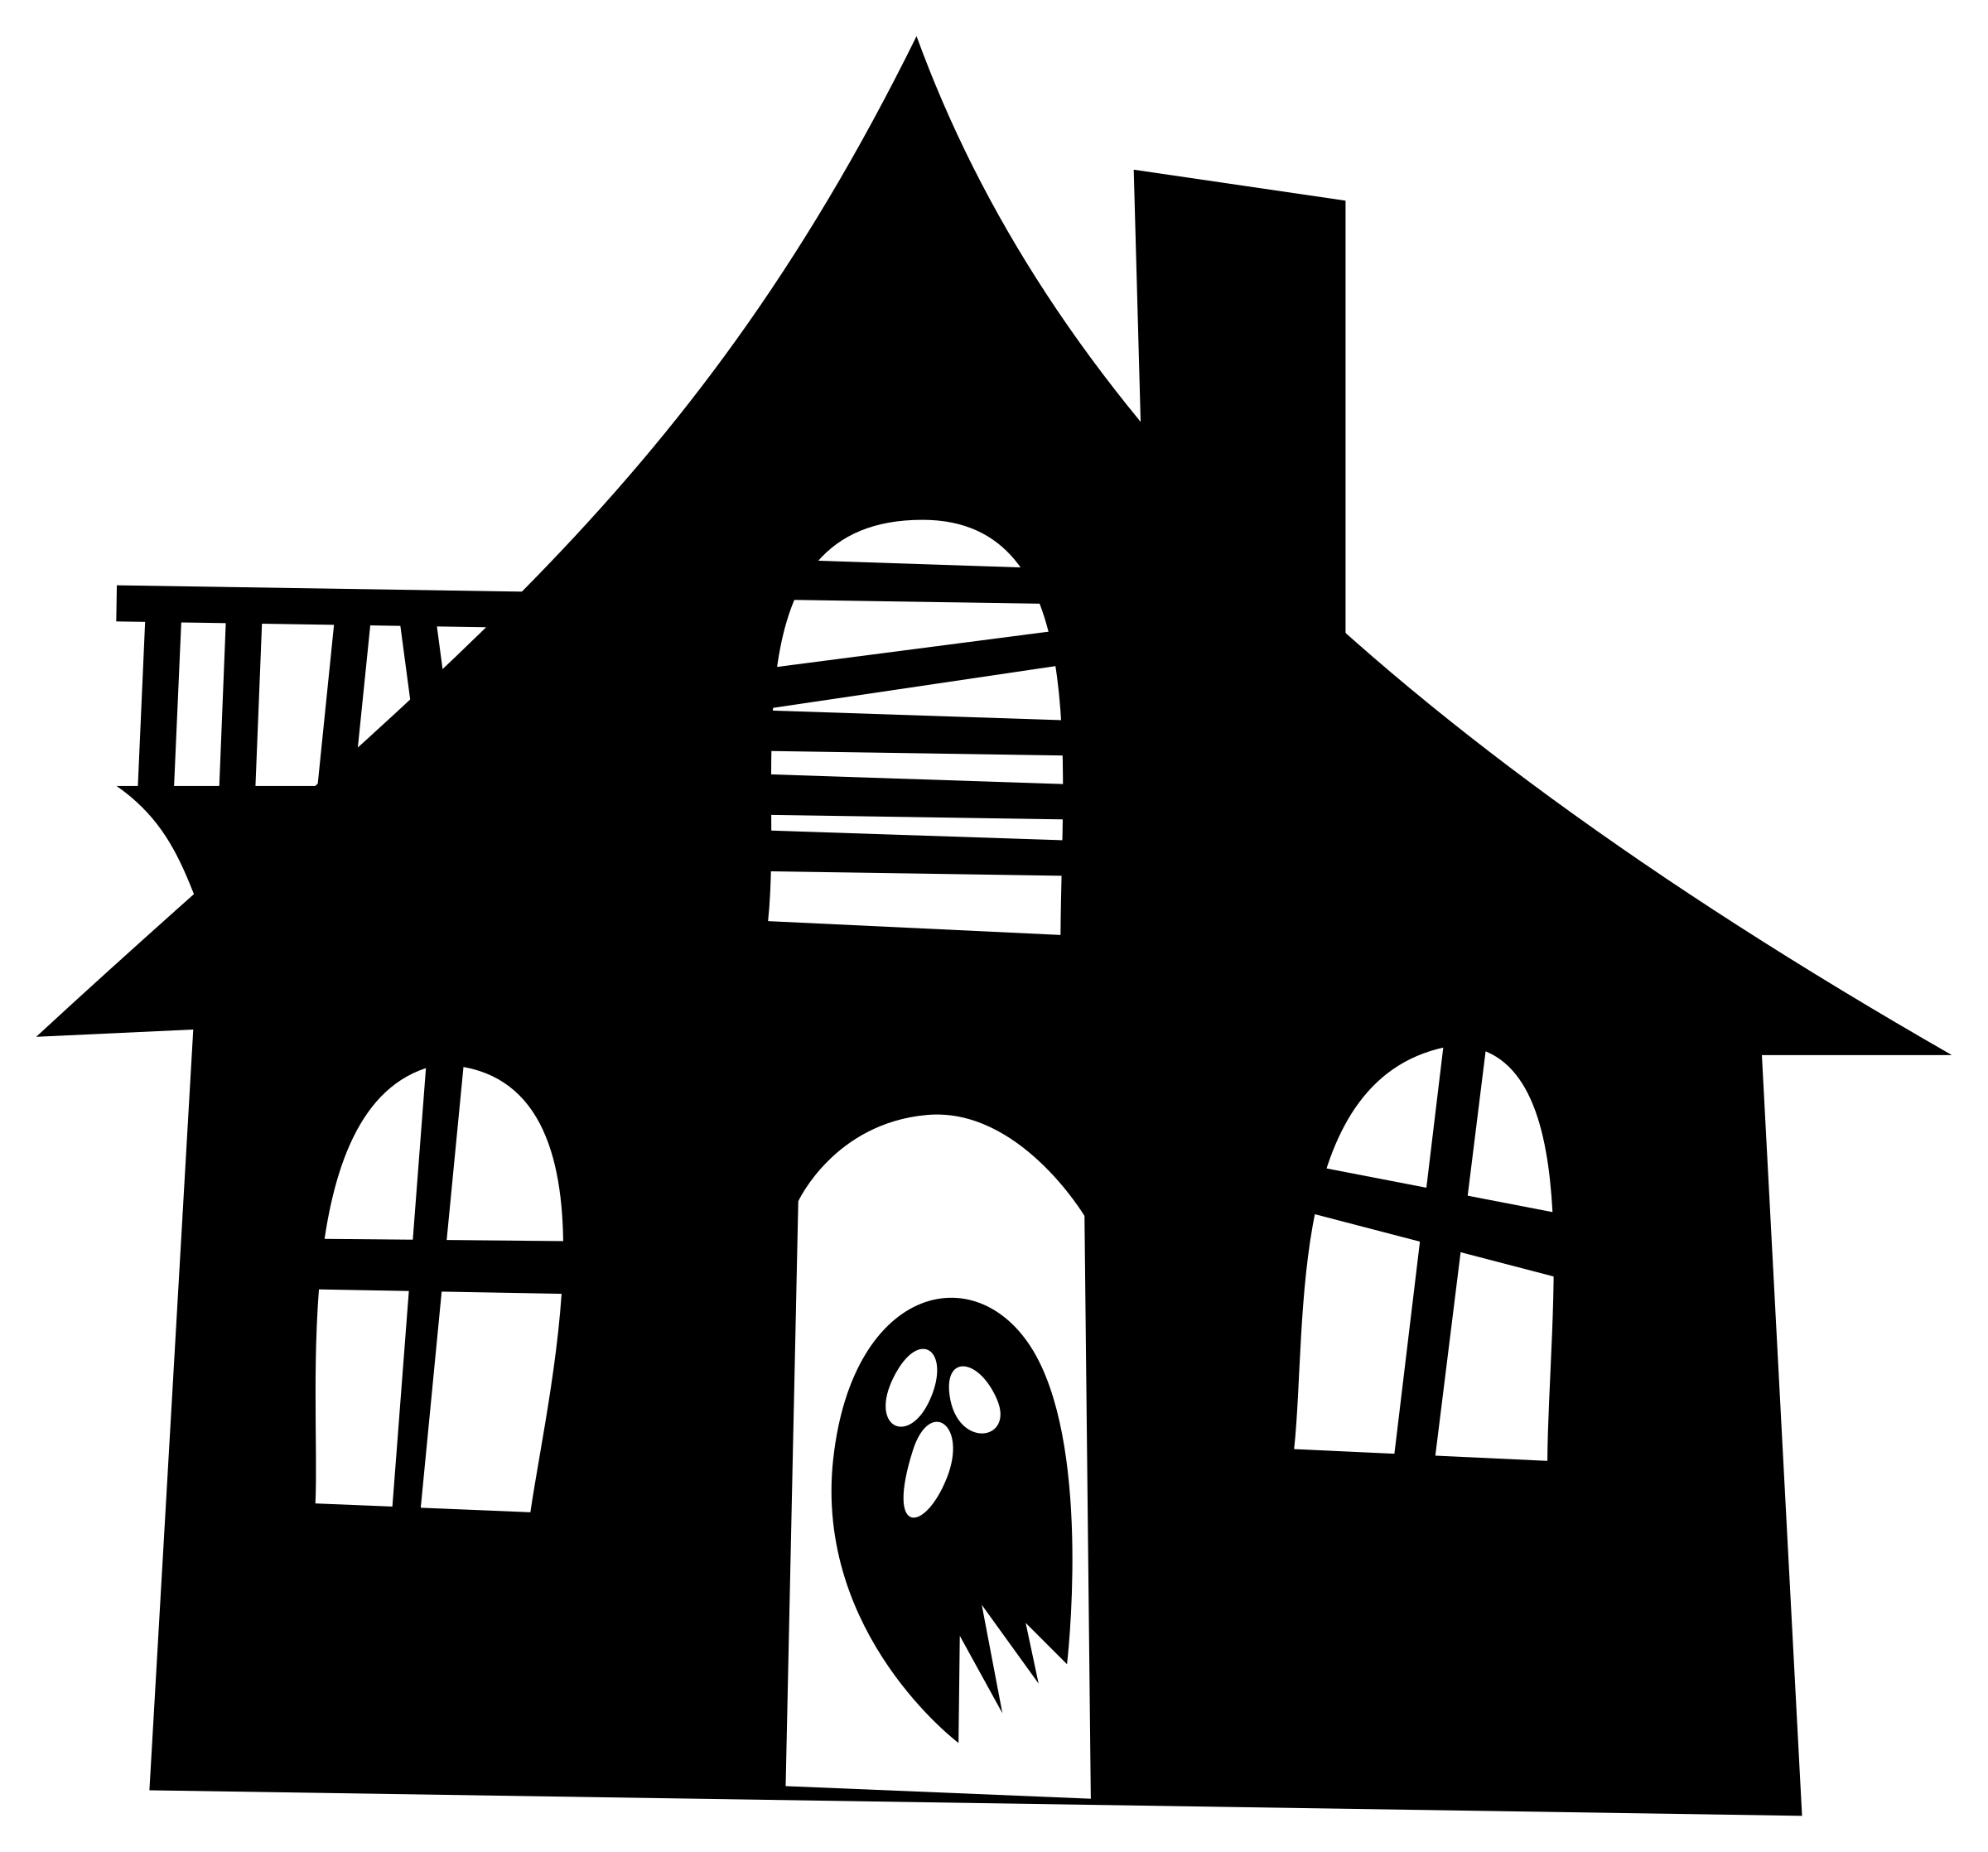 Clipart haunted big image. House silhouette png